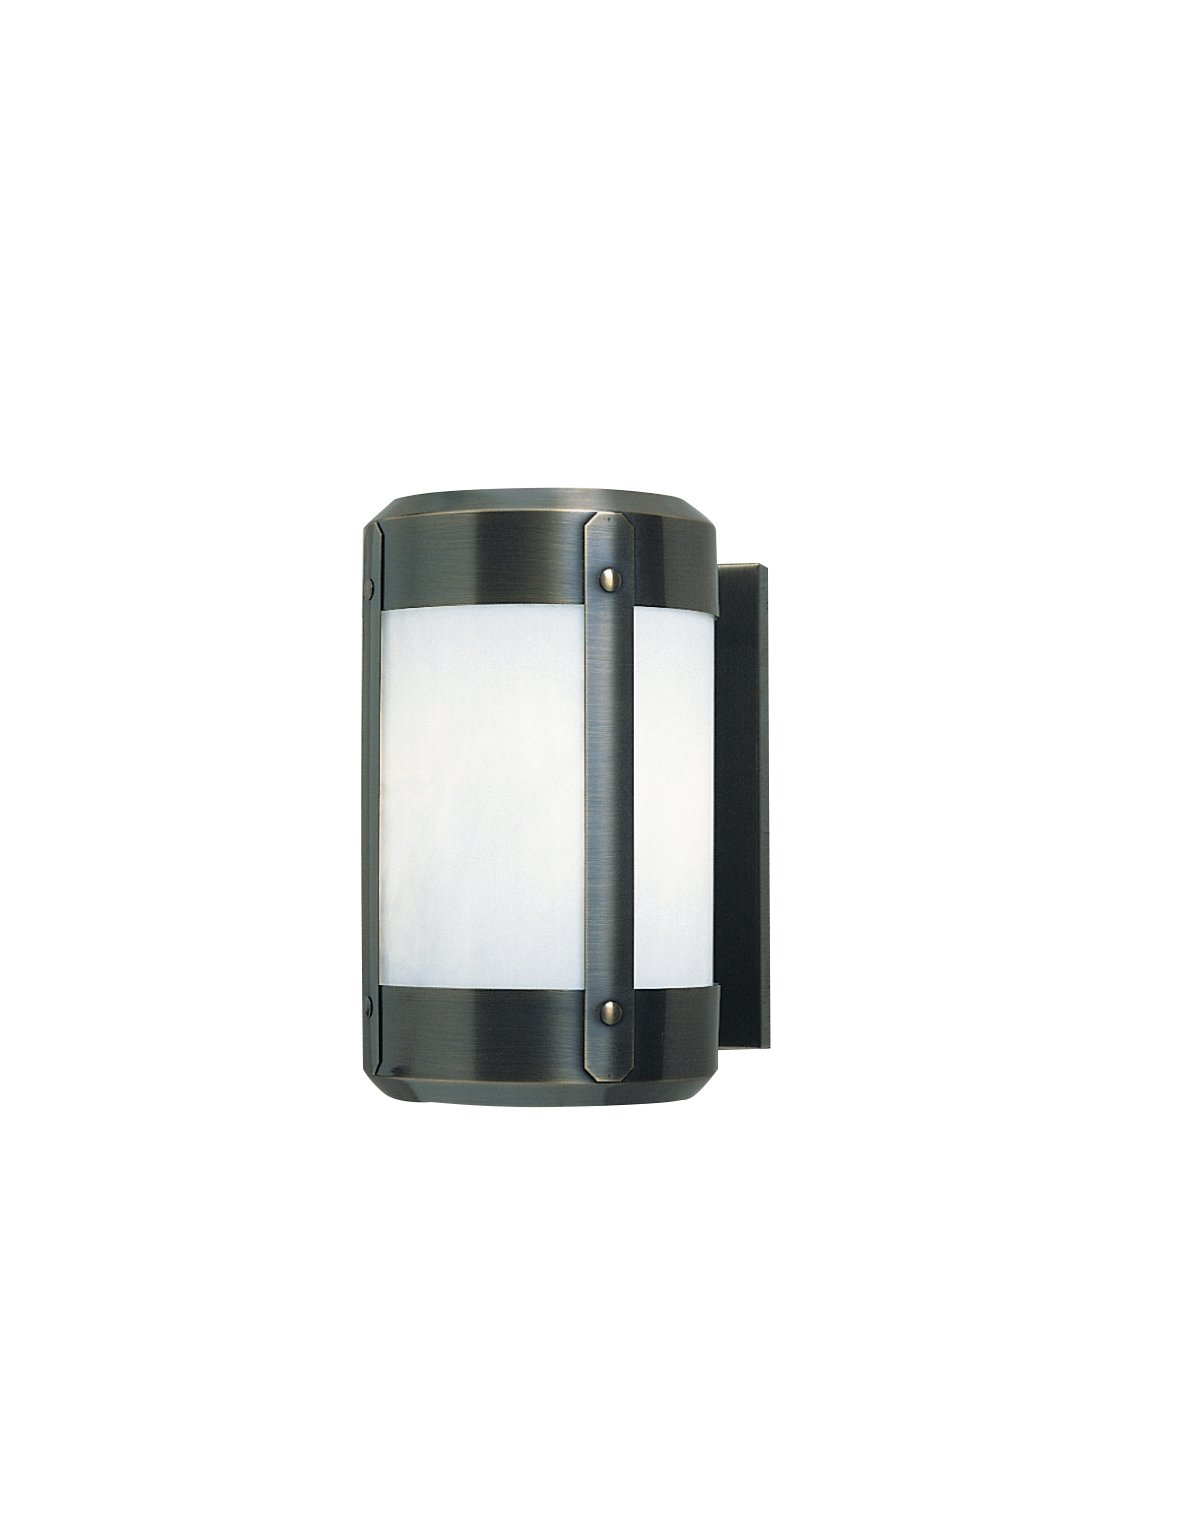 Arroyo Craftsman Berkeley Wall Sconce with Roof Satin Black Metal Finish, White Opalescent Glass, 8''